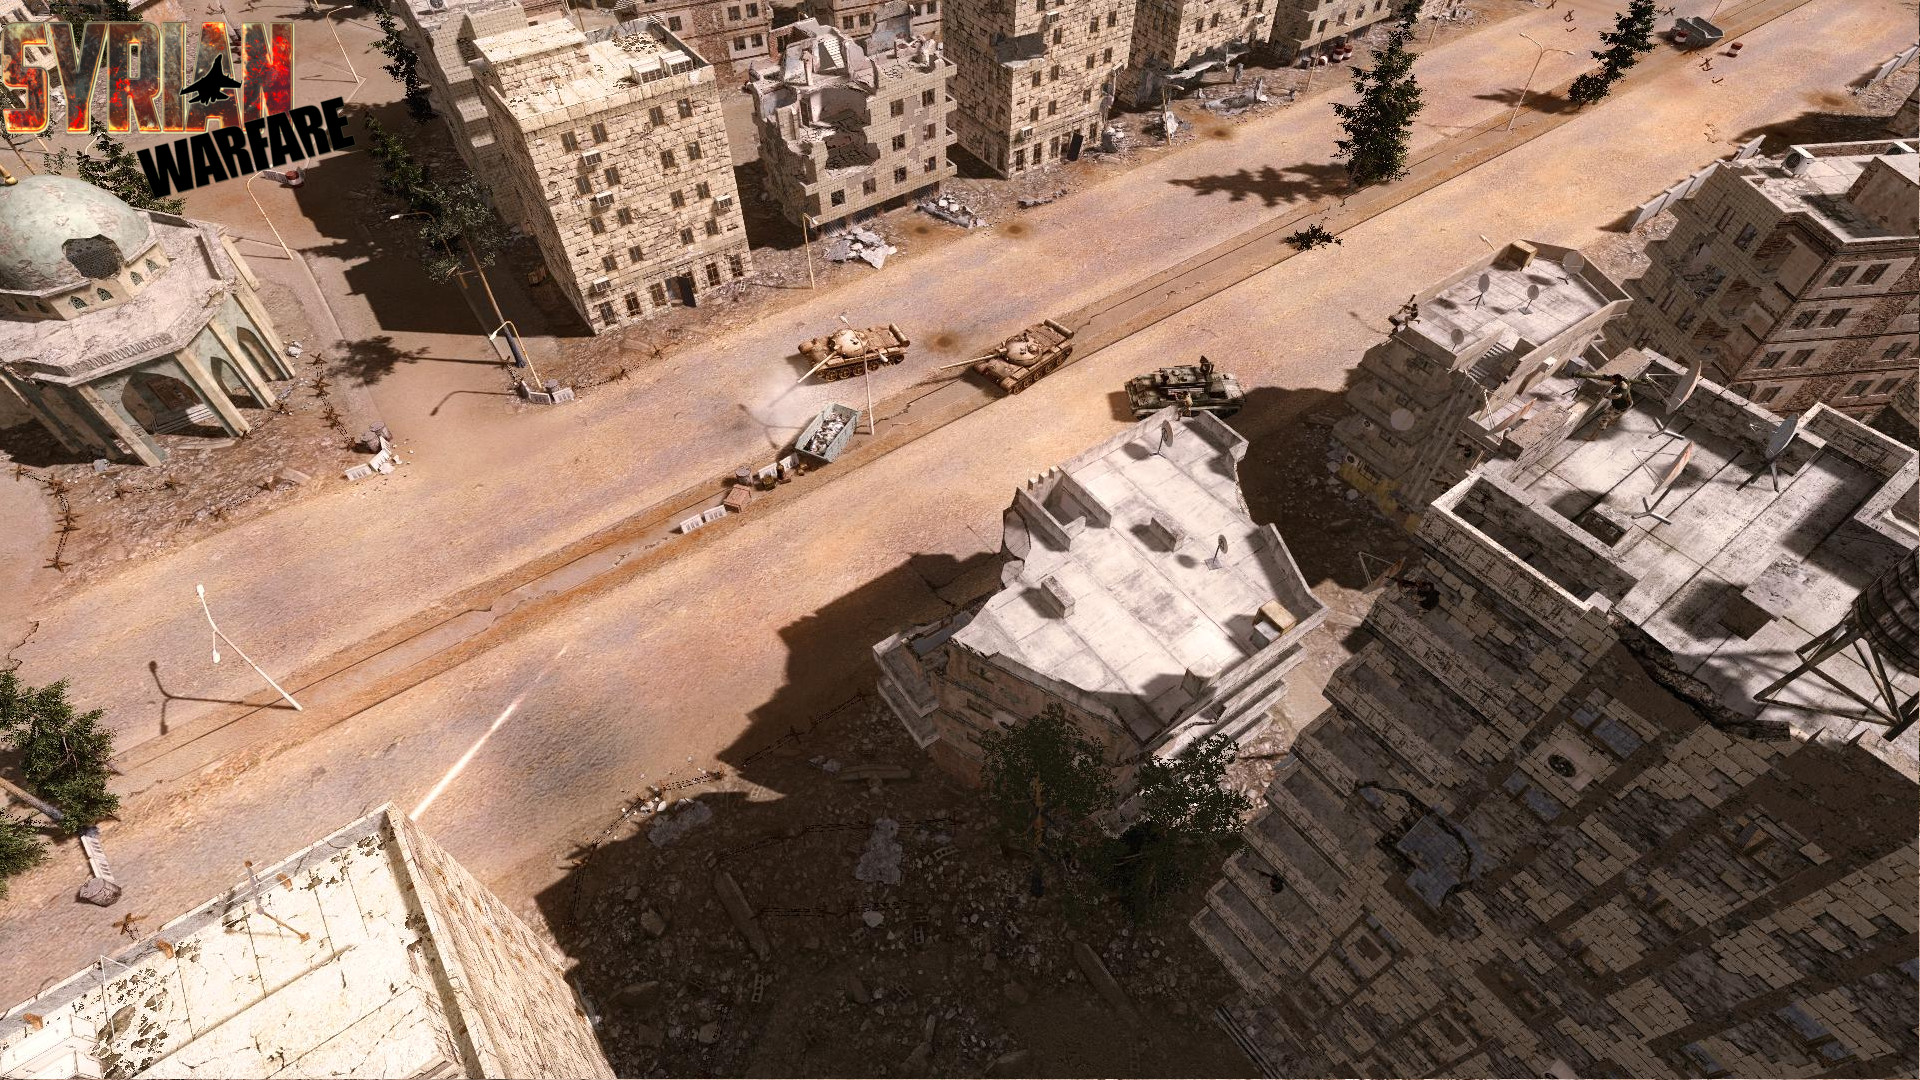 Syrian Warfare screenshot